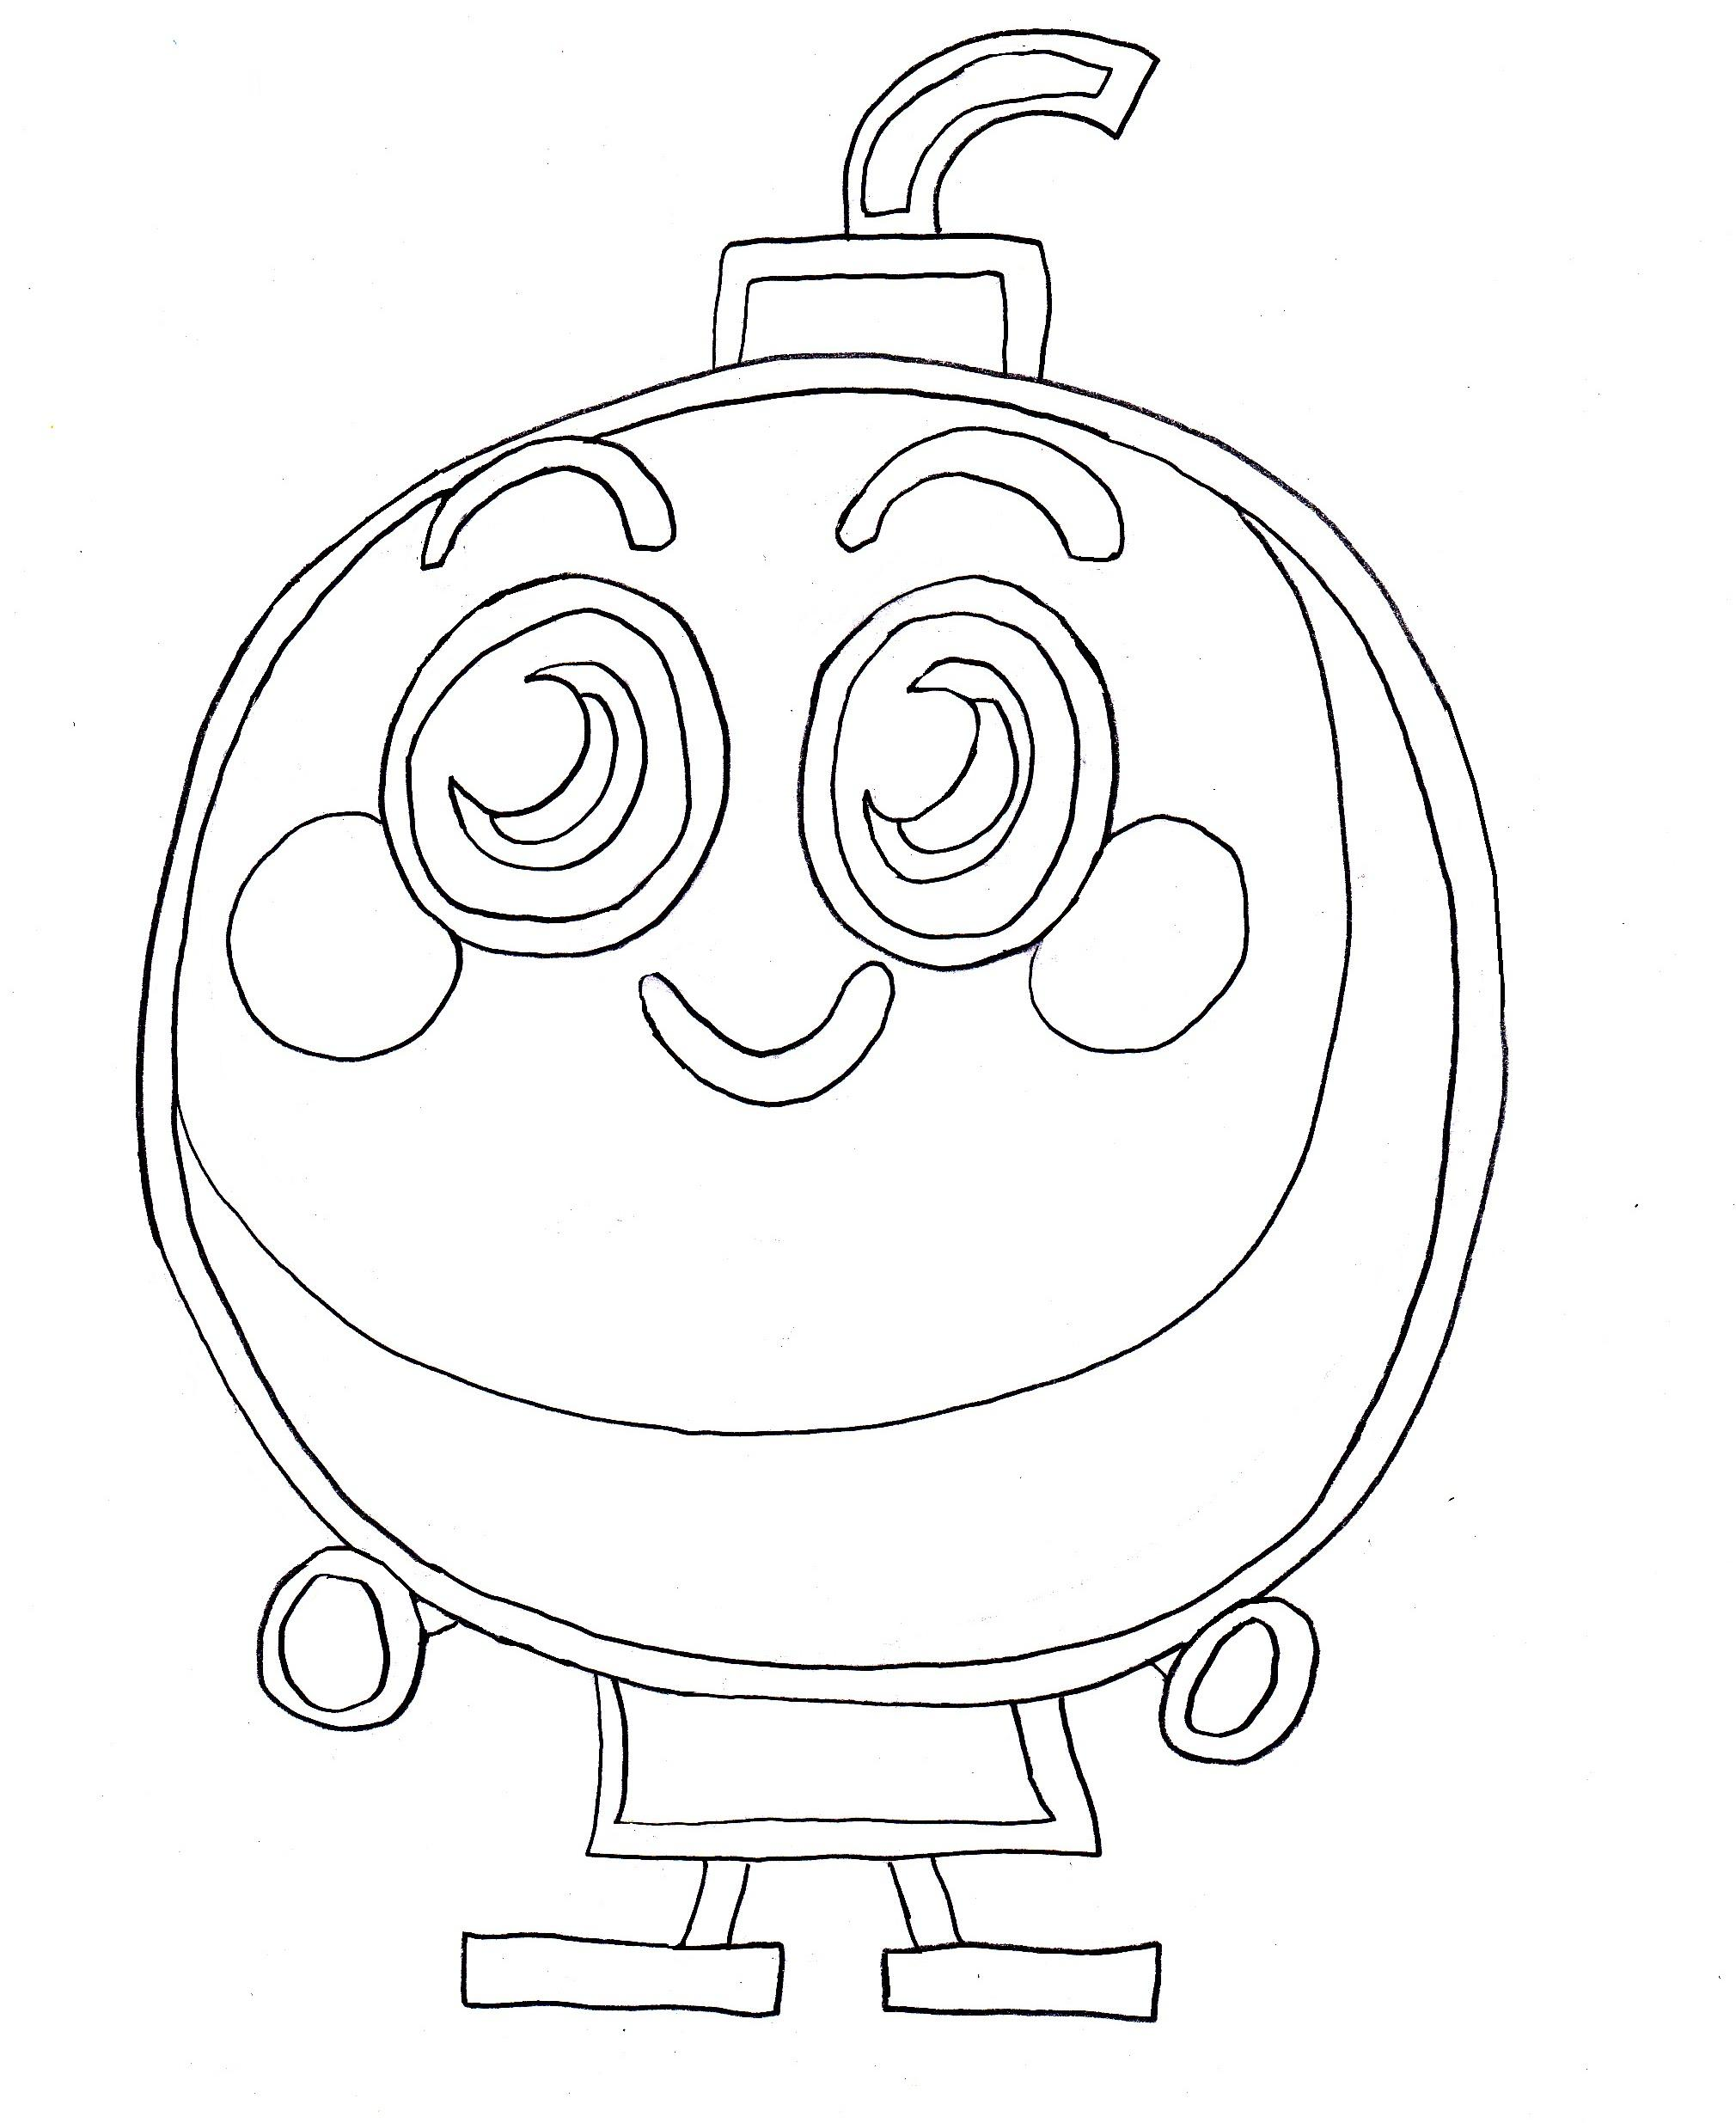 Free Moshi Monster Coloring Page, Download Free Clip Art, Free ... | 2470x2020